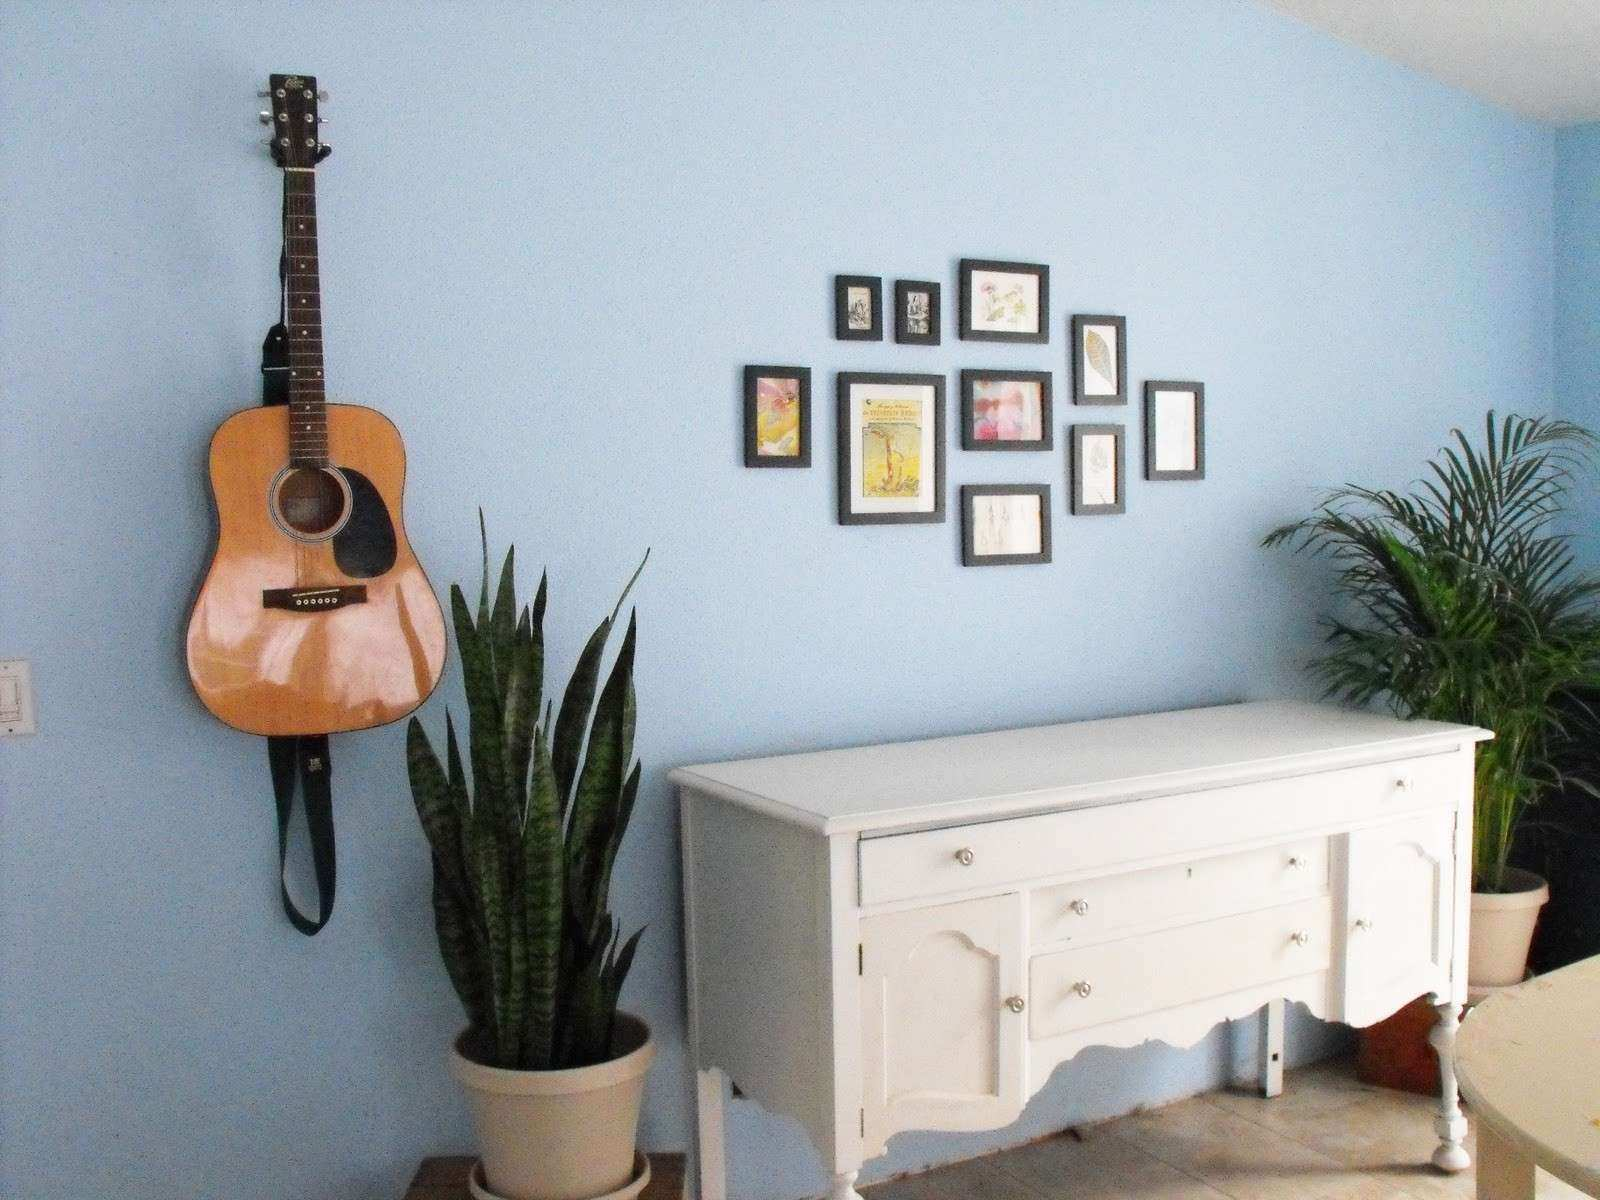 17 Hanging on Wall Ideas and How to Hang